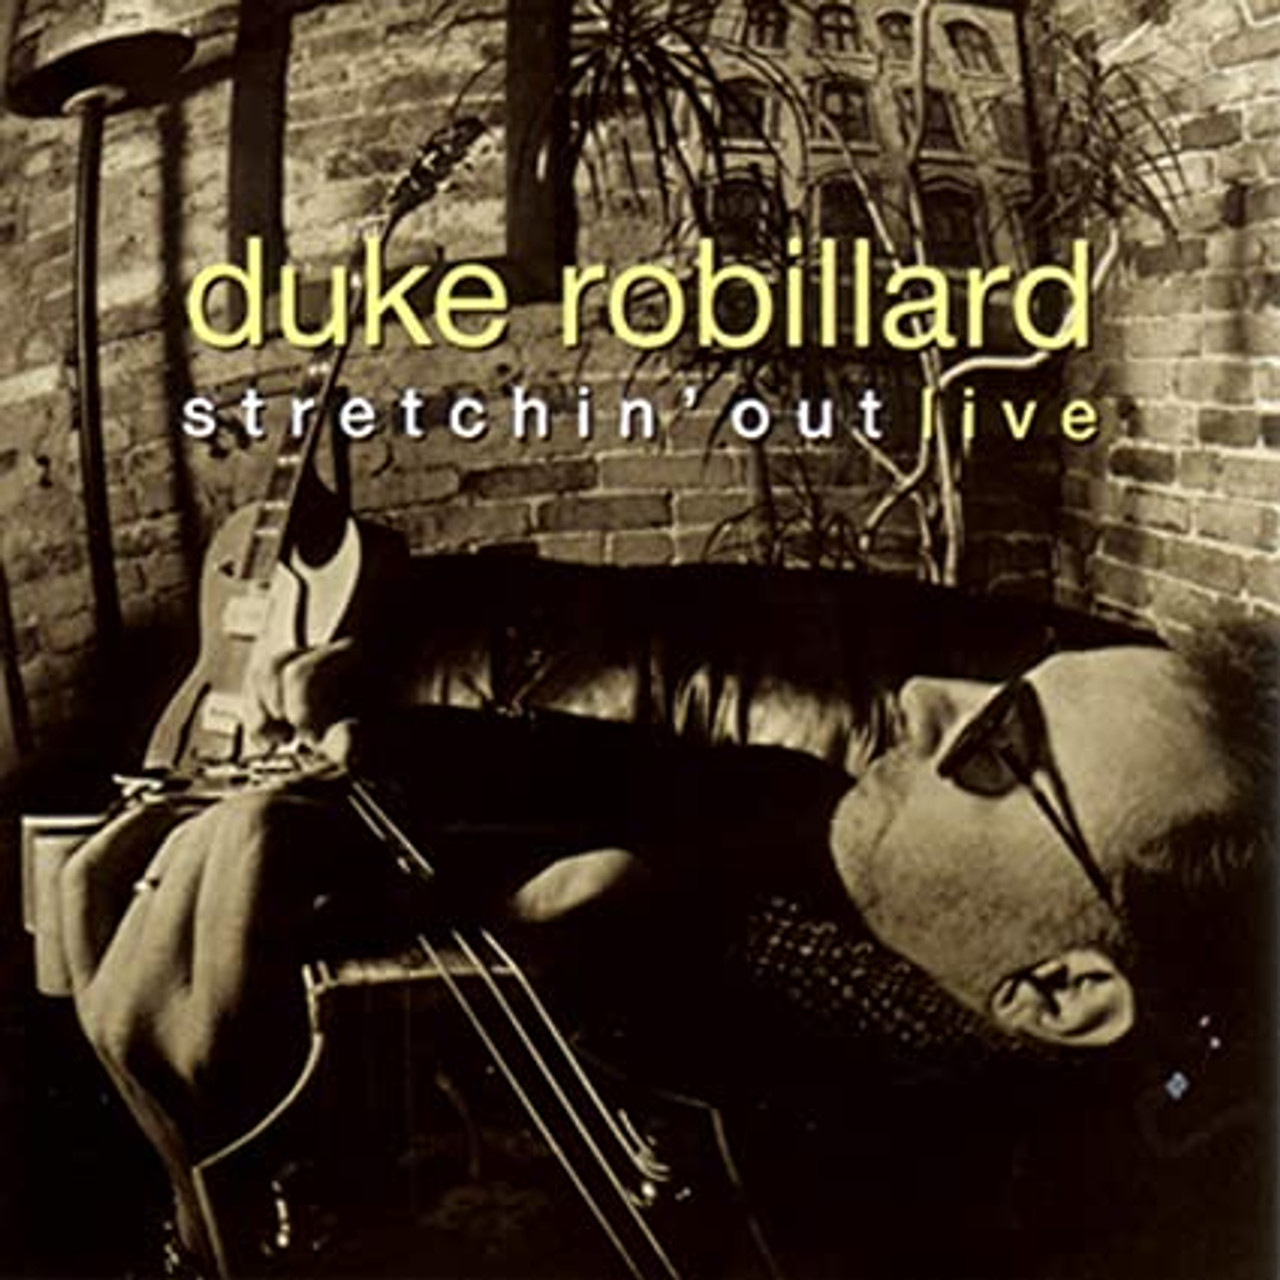 DUKE ROBILLARD - STRETCHIN' OUT LIVE